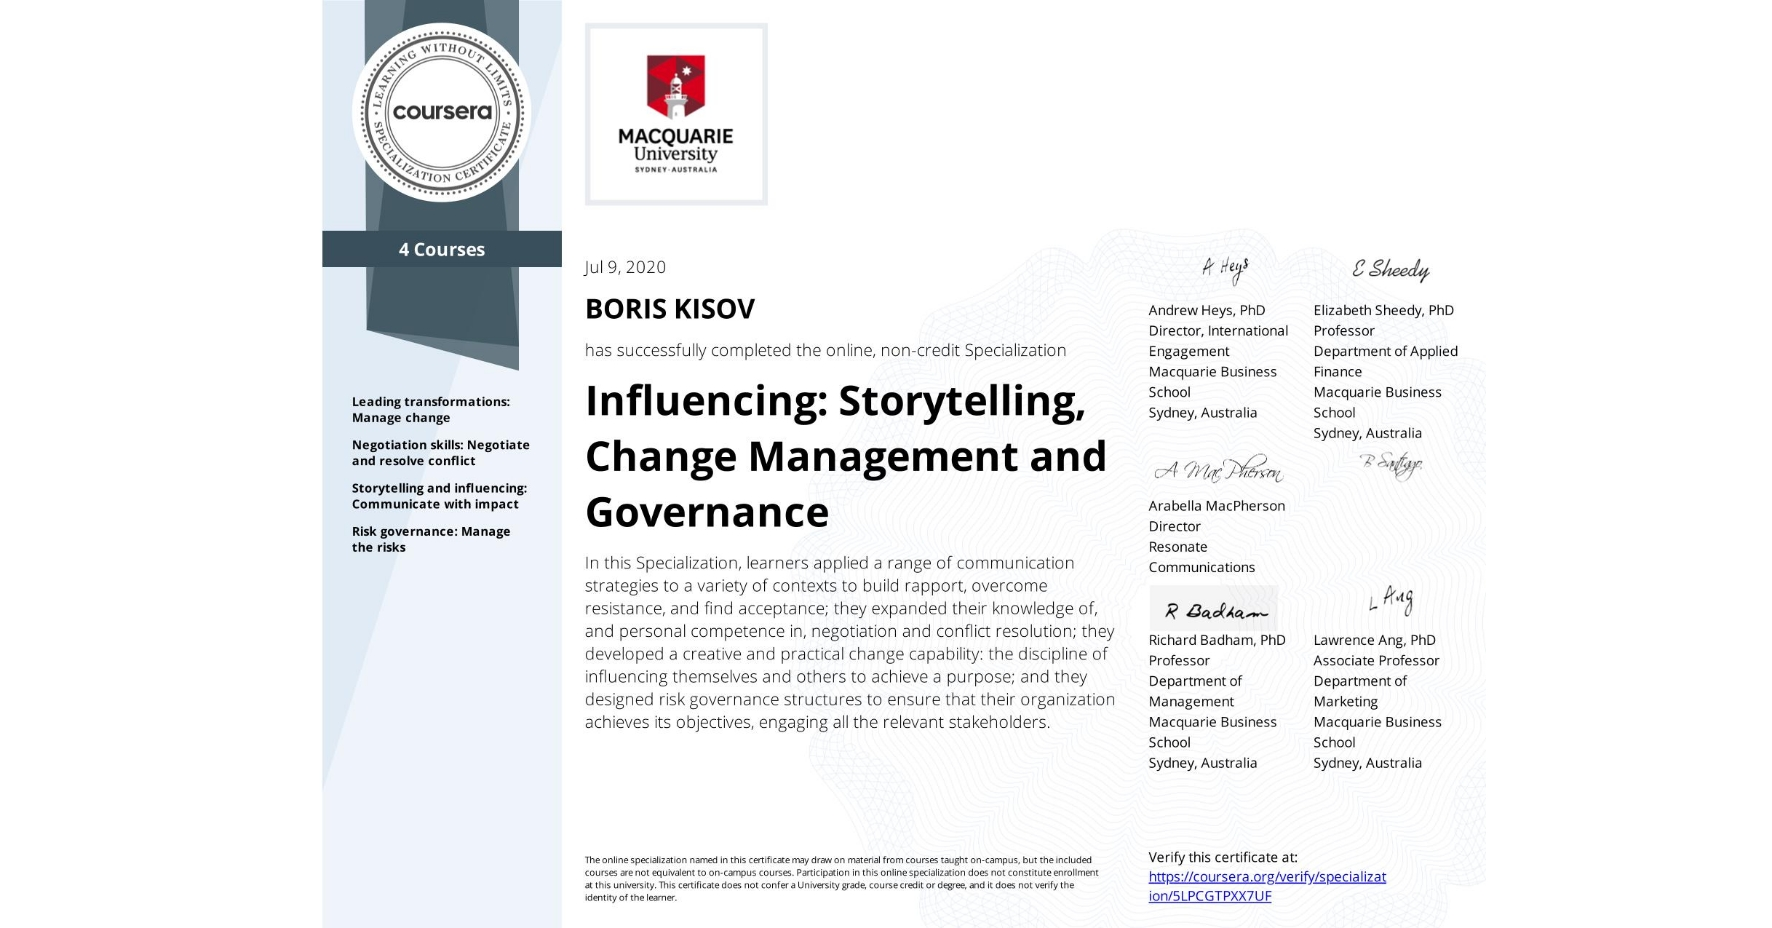 View certificate for BORIS KISOV, Influencing: Storytelling, Change Management and Governance, offered through Coursera. In this Specialization, learners applied a range of communication strategies to a variety of contexts to build rapport, overcome resistance, and find acceptance; they expanded their knowledge of, and personal competence in, negotiation and conflict resolution; they developed a creative and practical change capability: the discipline of influencing themselves and others to achieve a purpose; and they designed risk governance structures to ensure that their organization achieves its objectives, engaging all the relevant stakeholders.